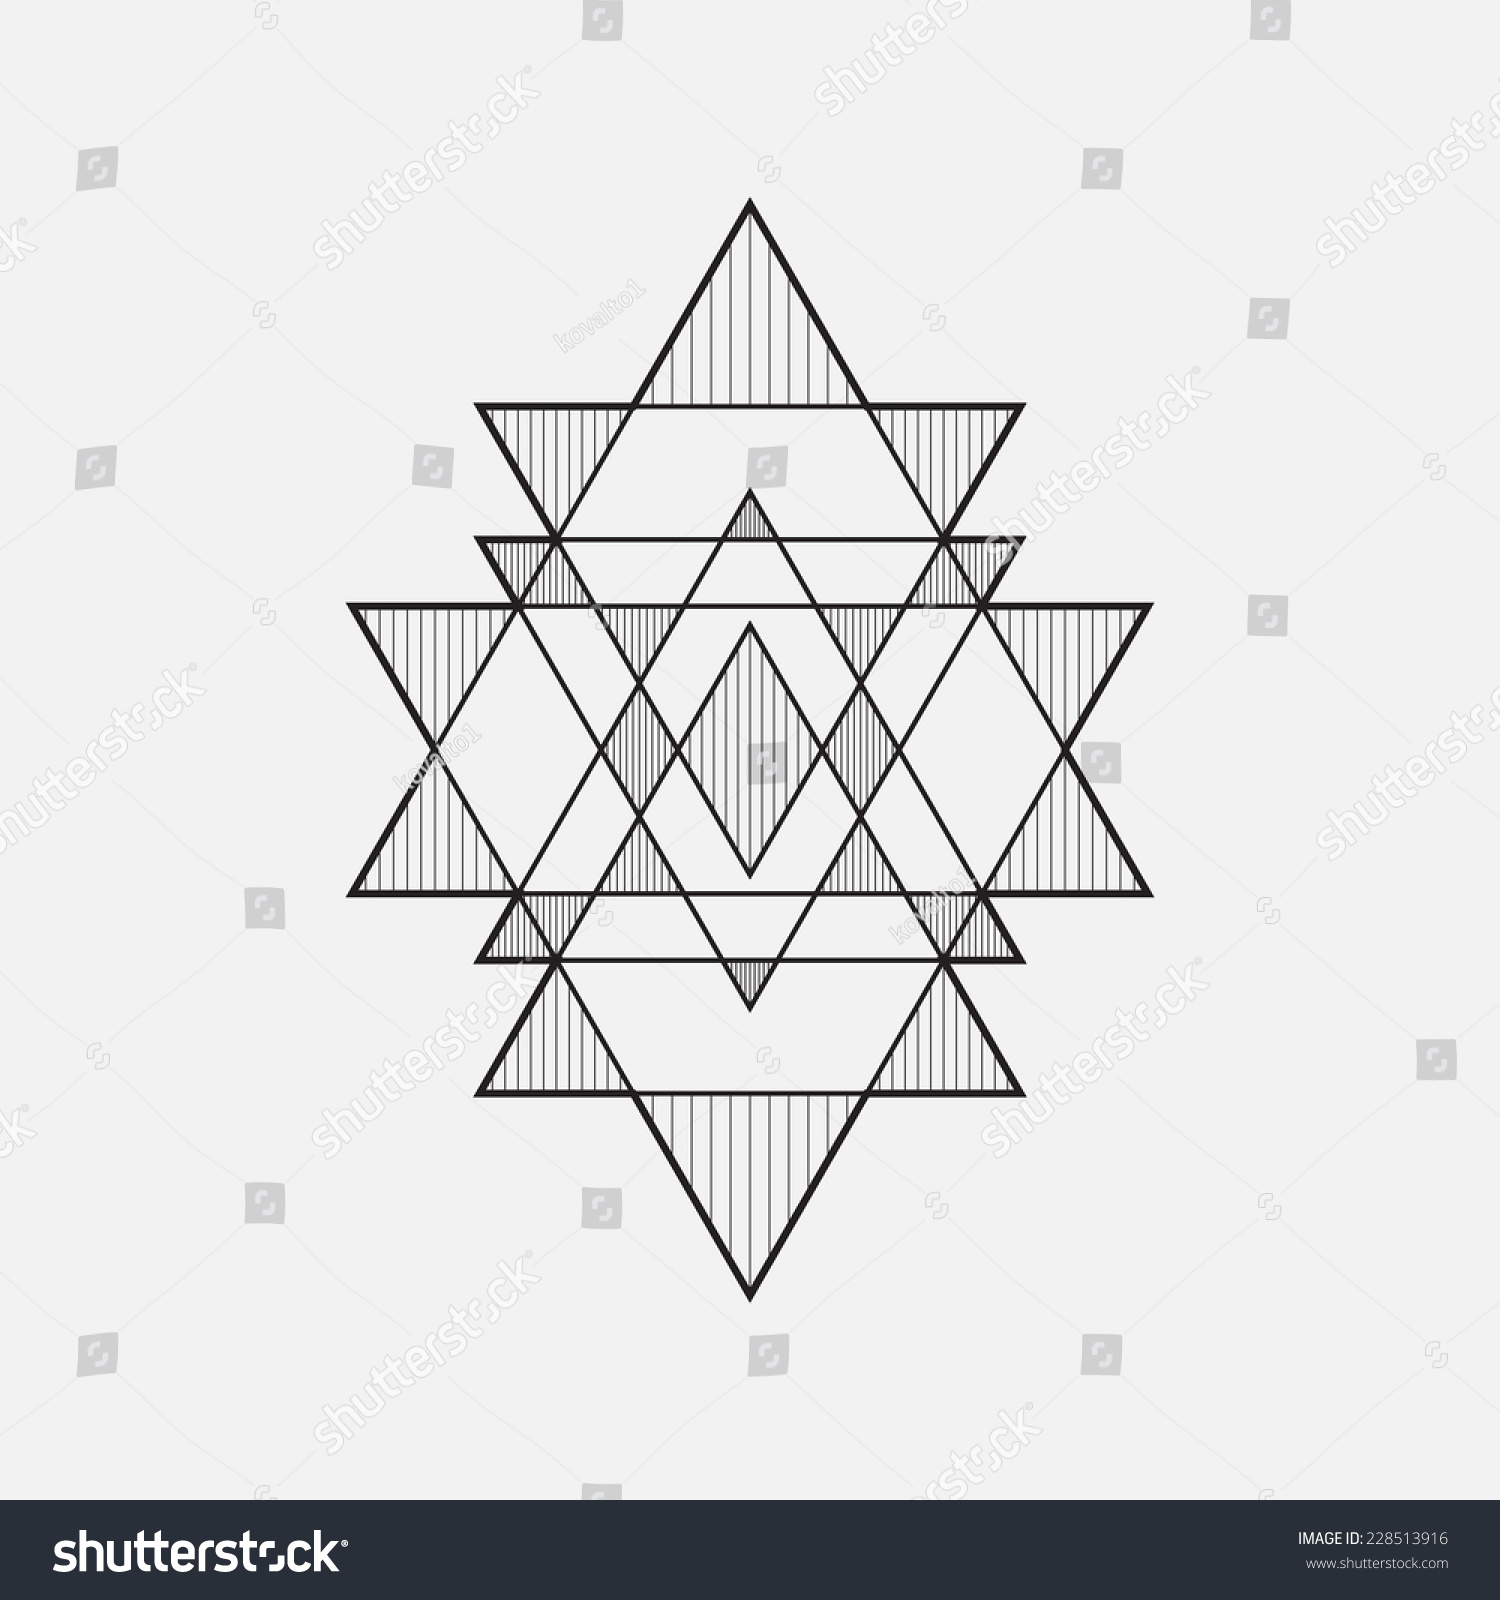 Geometric Shapes, Line Design, Triangle Stock Vector Illustration ...: www.shutterstock.com/pic-228513916/stock-vector-geometric-shapes...